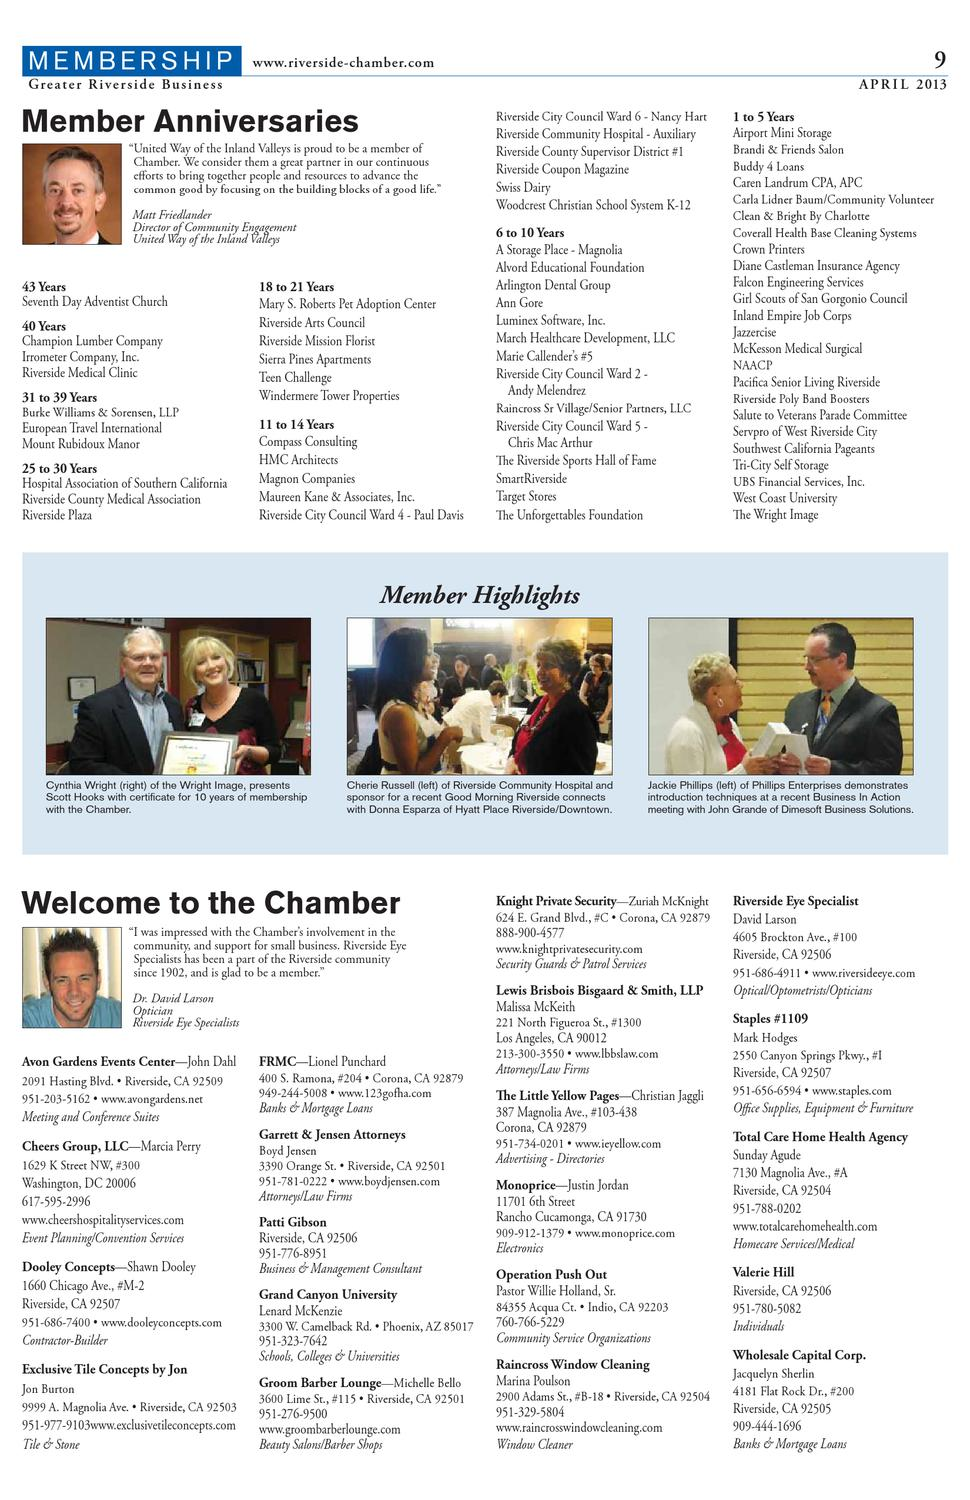 Greater Riverside Business - April 2013 Issue by Greater Riverside